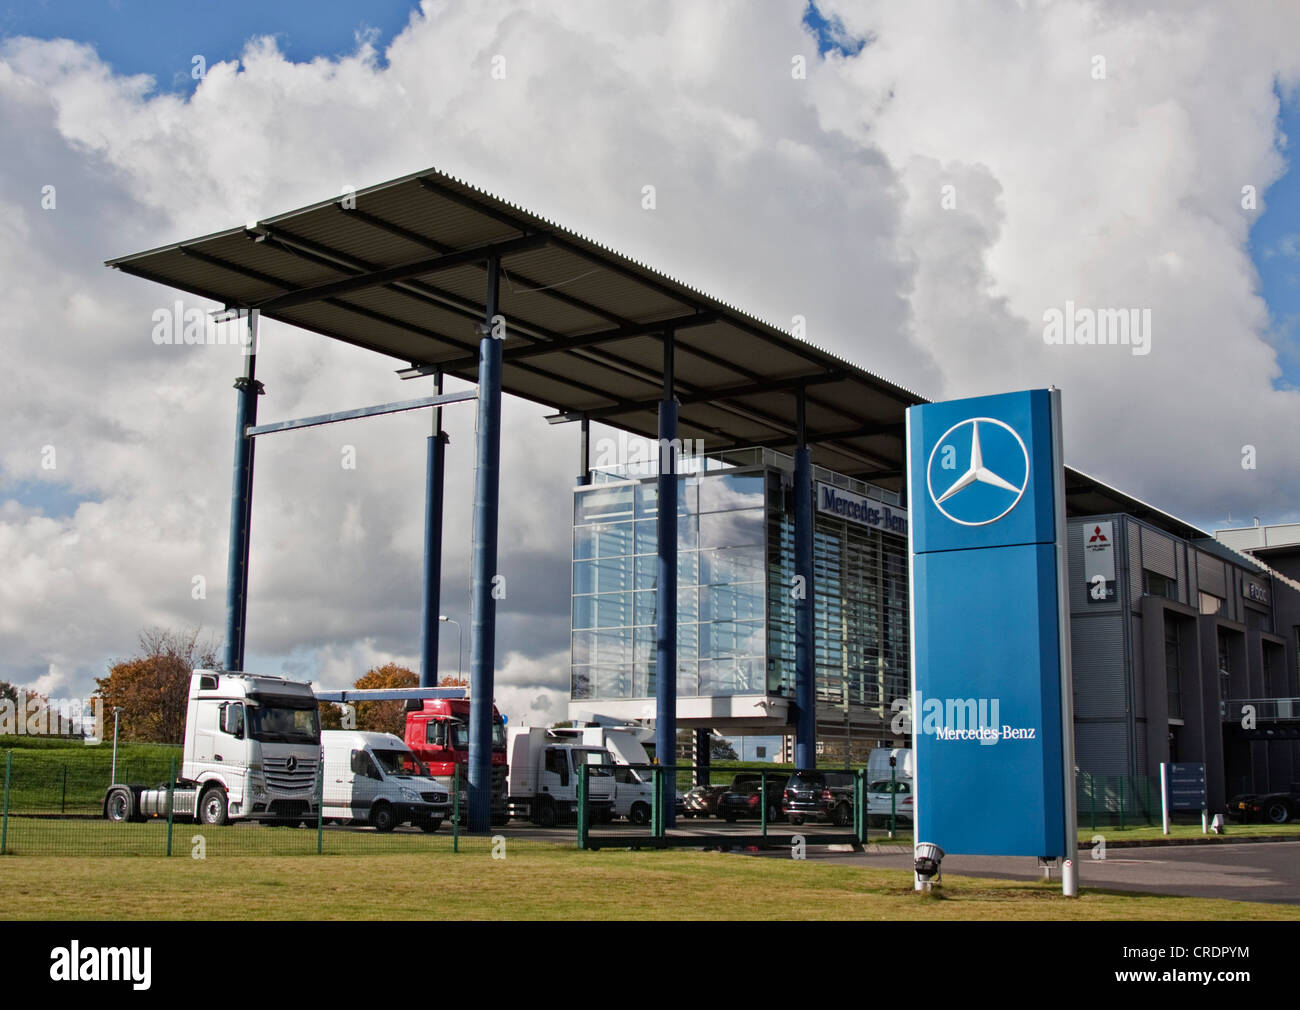 Branch of Mercedes Benz in Riga, Latvia, Europe - Stock Image